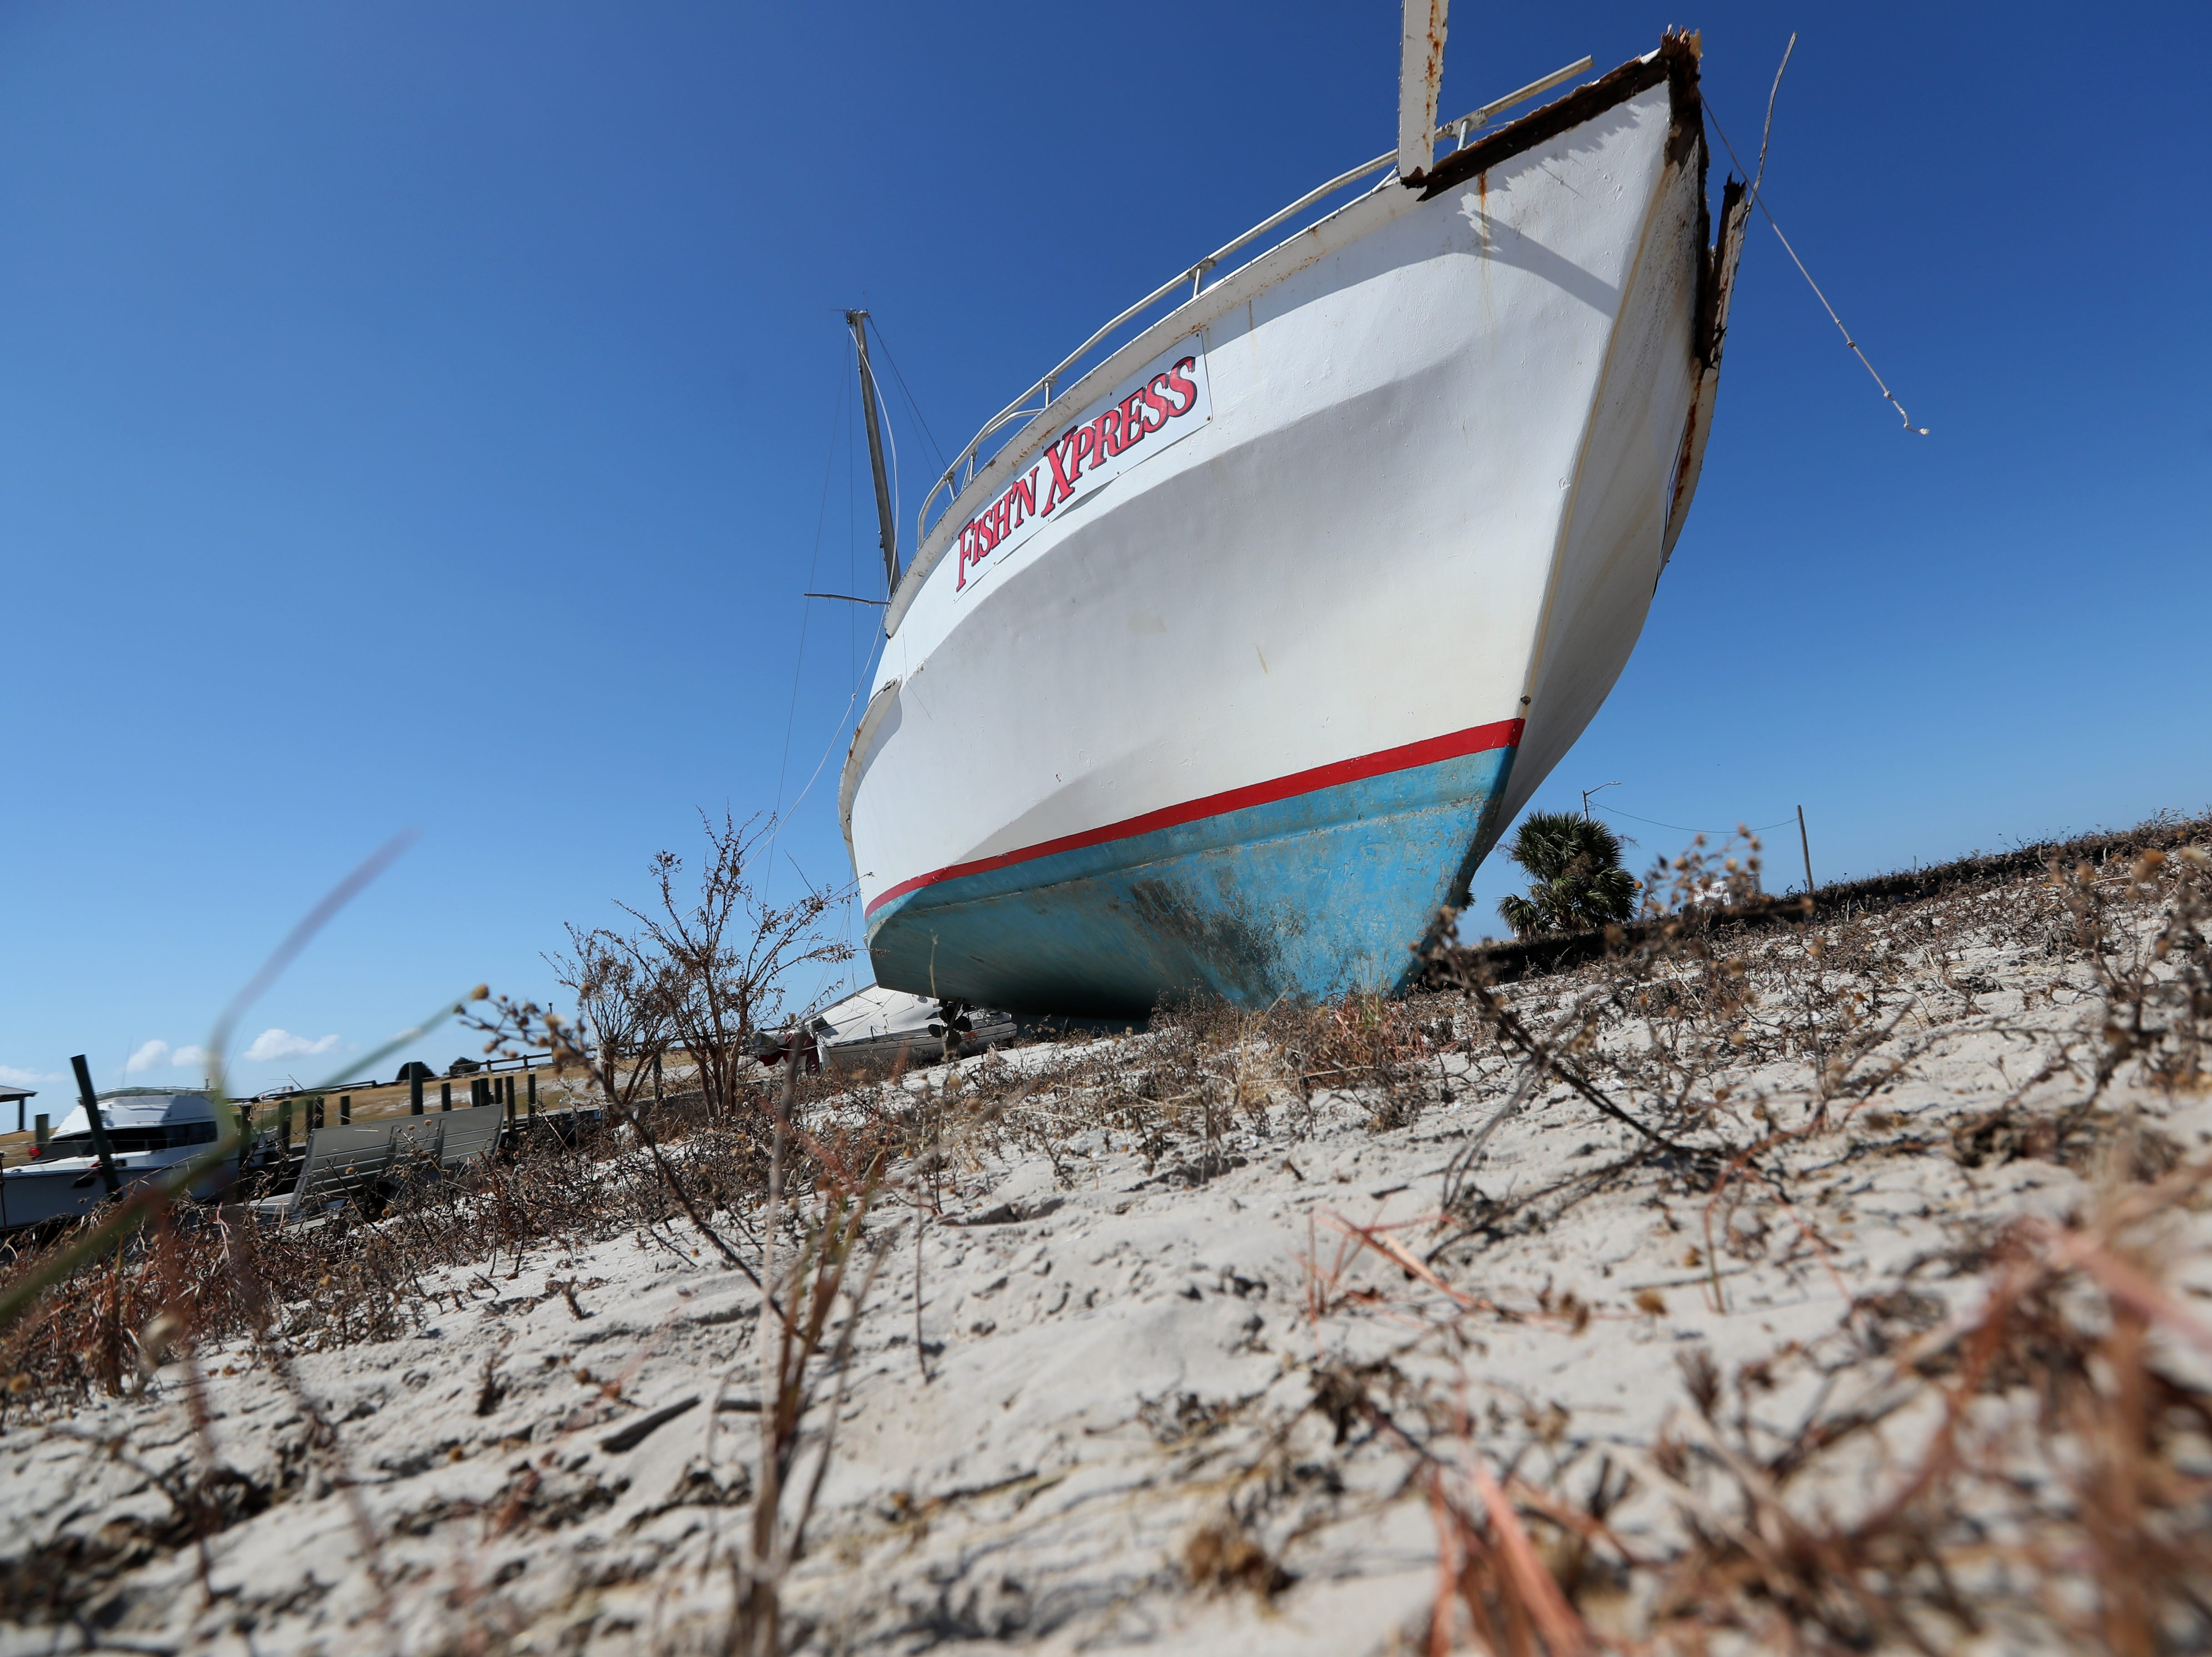 Fish'N Xpress, a large fishing vessel lays ashore Tuesday near the Port St. Joe marina after Hurricane Michael blasted the region.